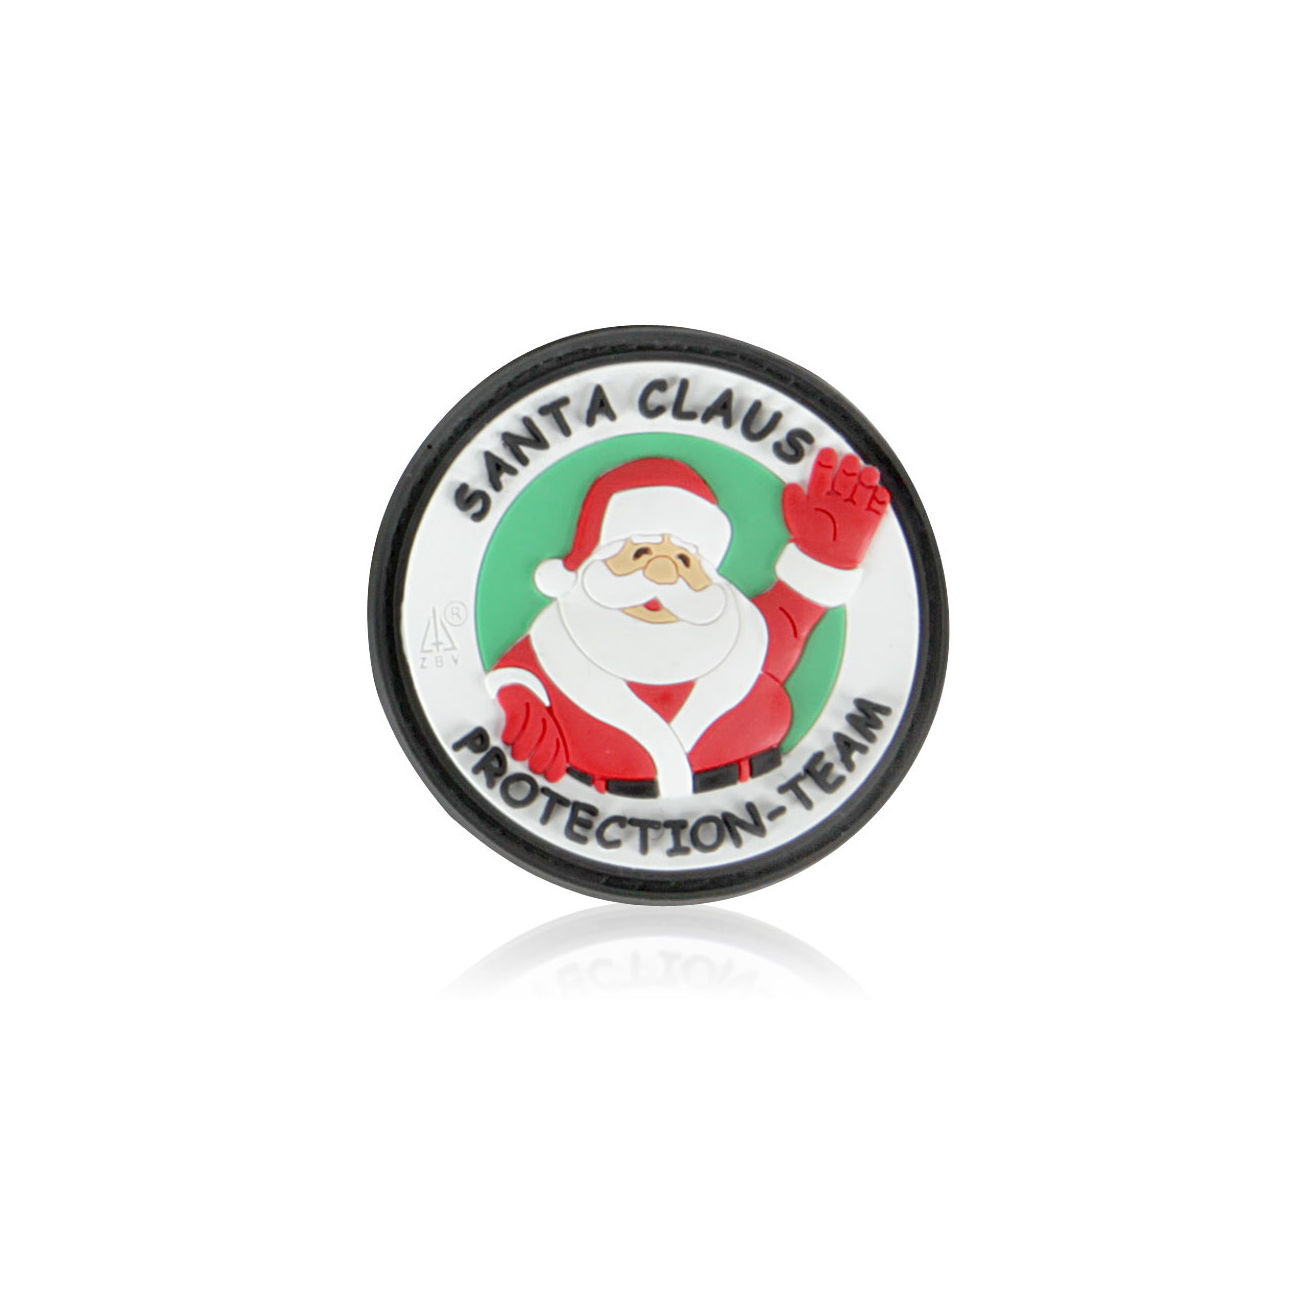 3D Rubber Patch Santa Claus Protection Team 0